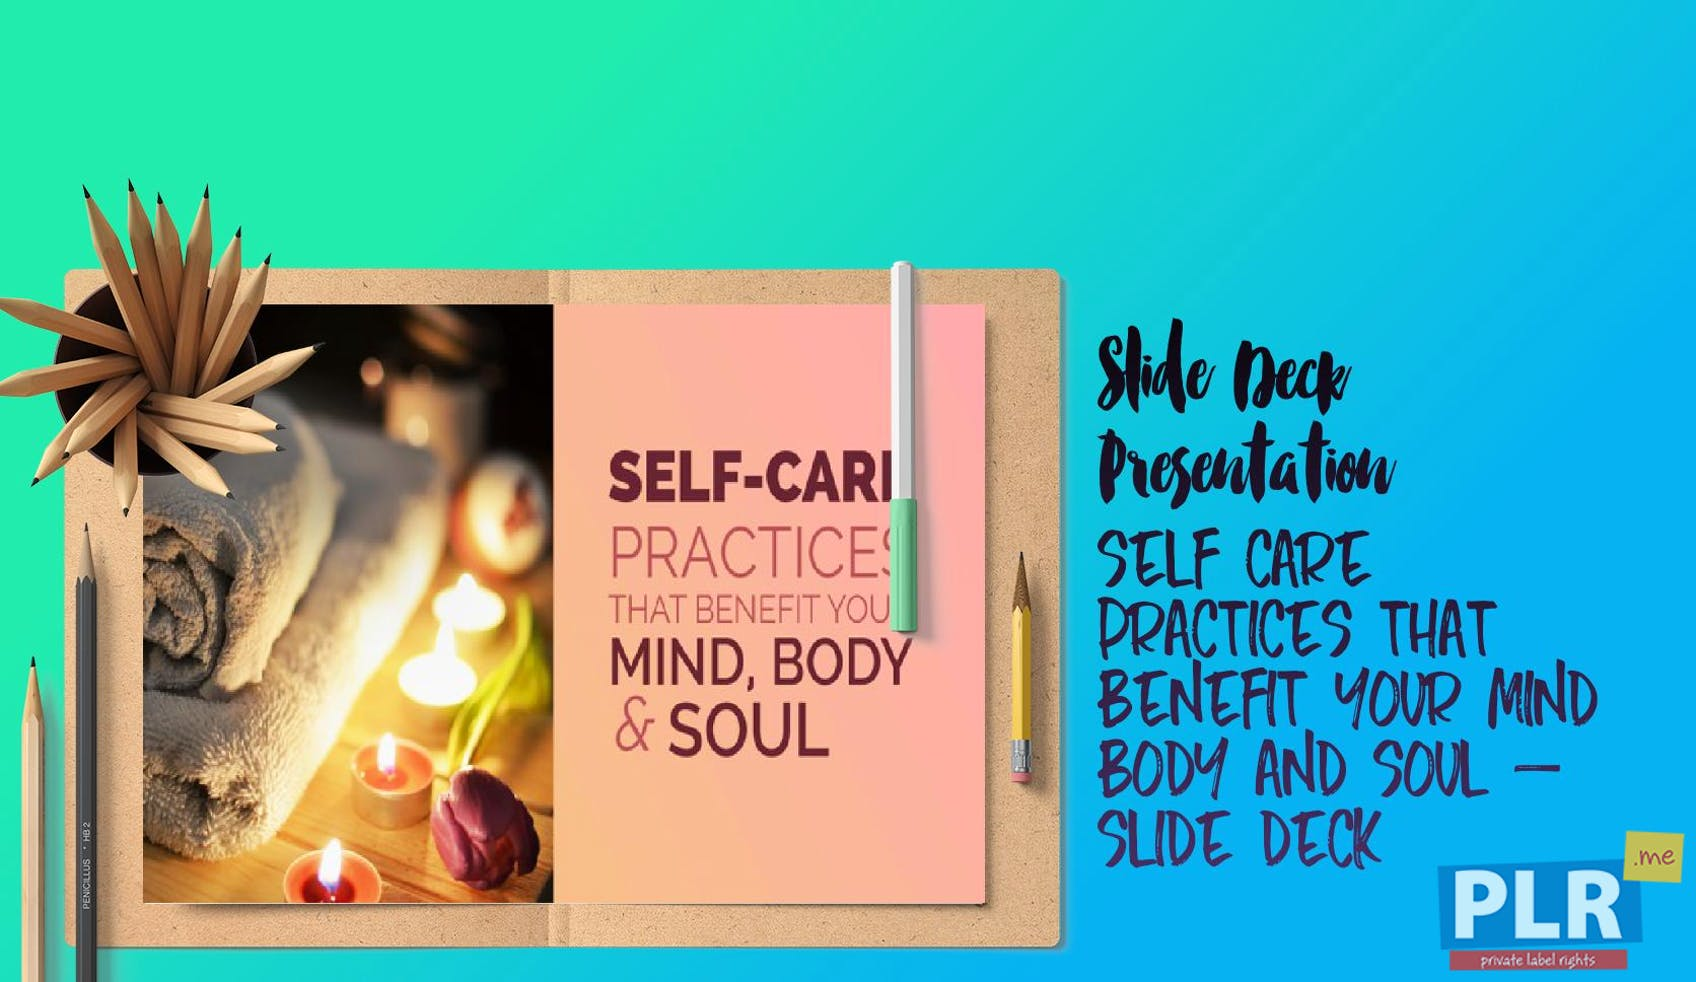 Self Care Practices That Benefit Your Mind Body And Soul - Slide Deck